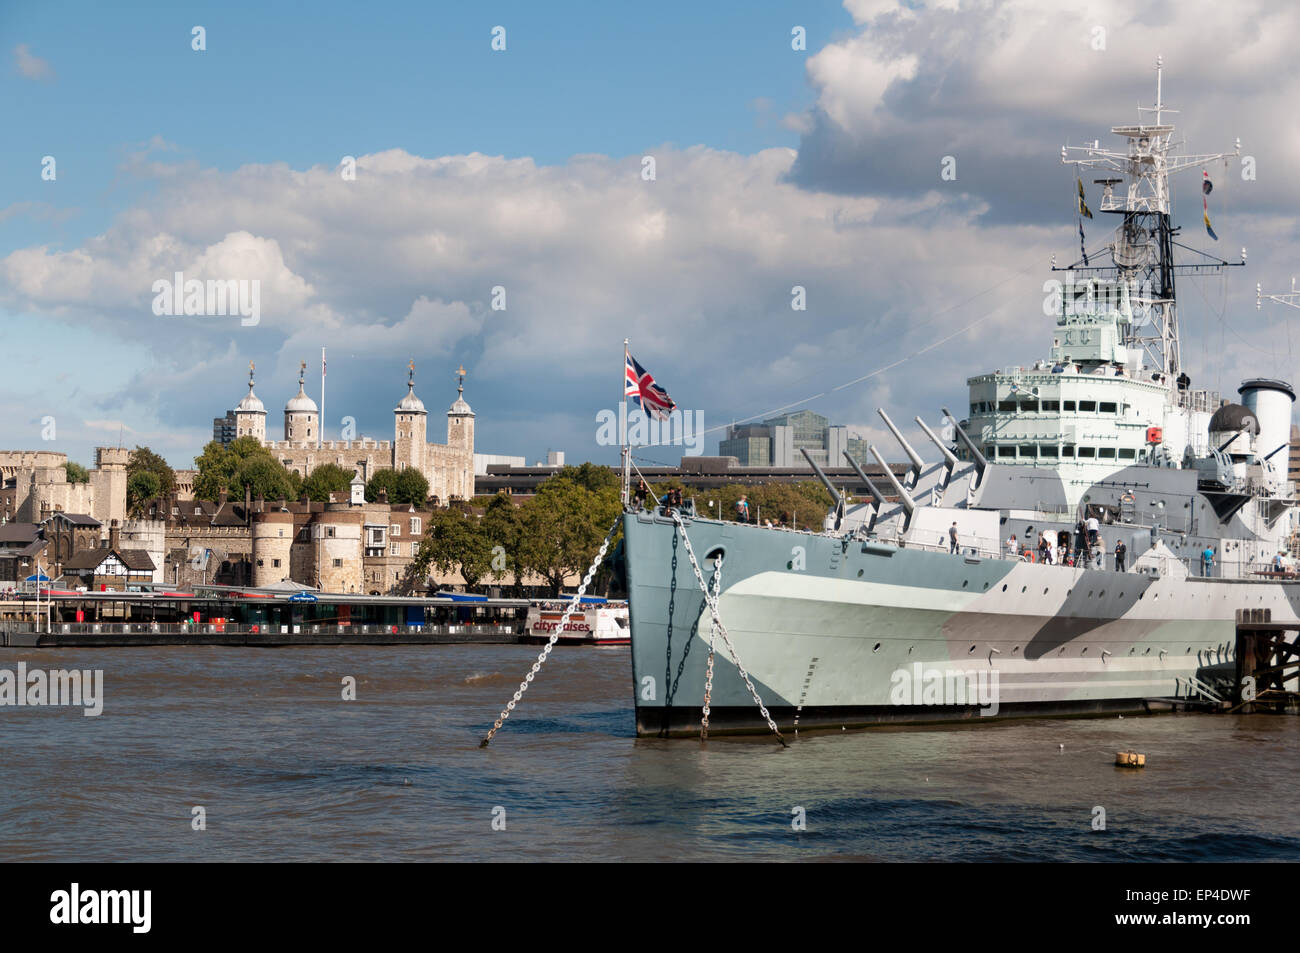 HMS Belfast and the Tower Bridge on the river Thames in London, England - Stock Image